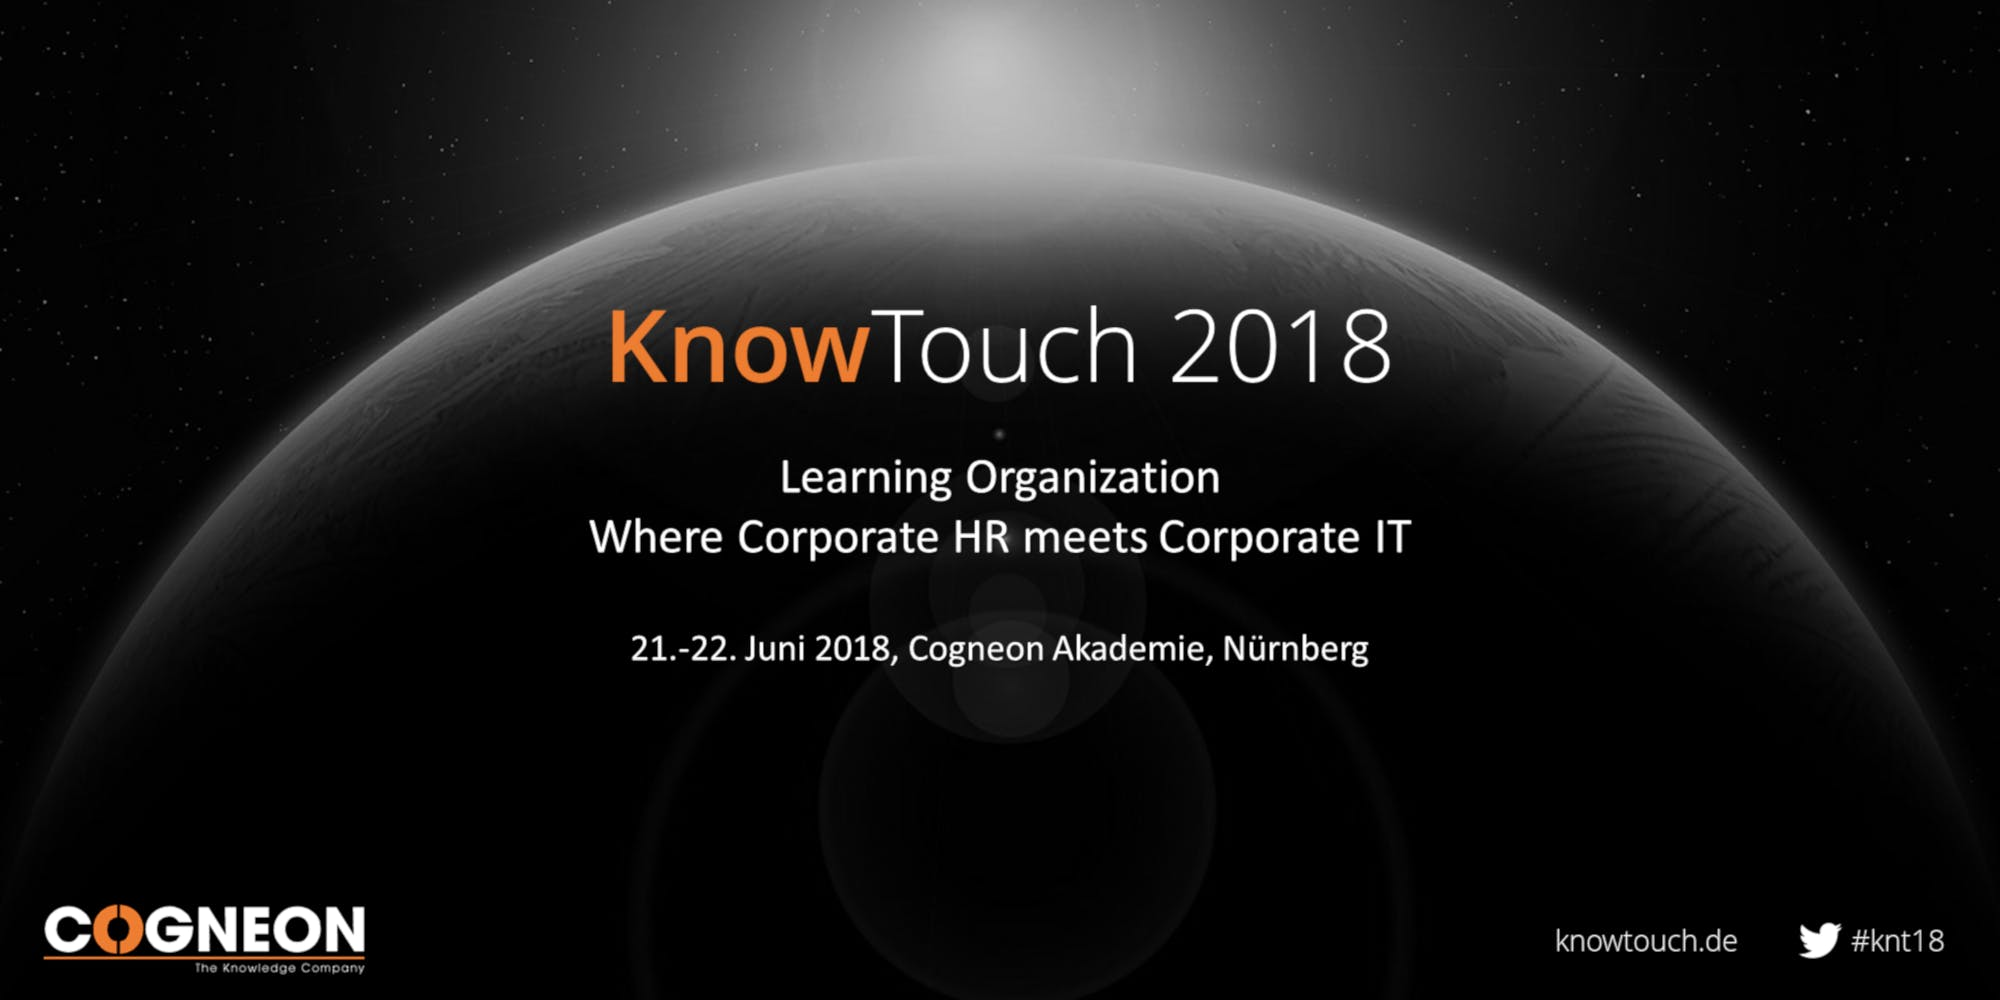 KnowTouch 2018